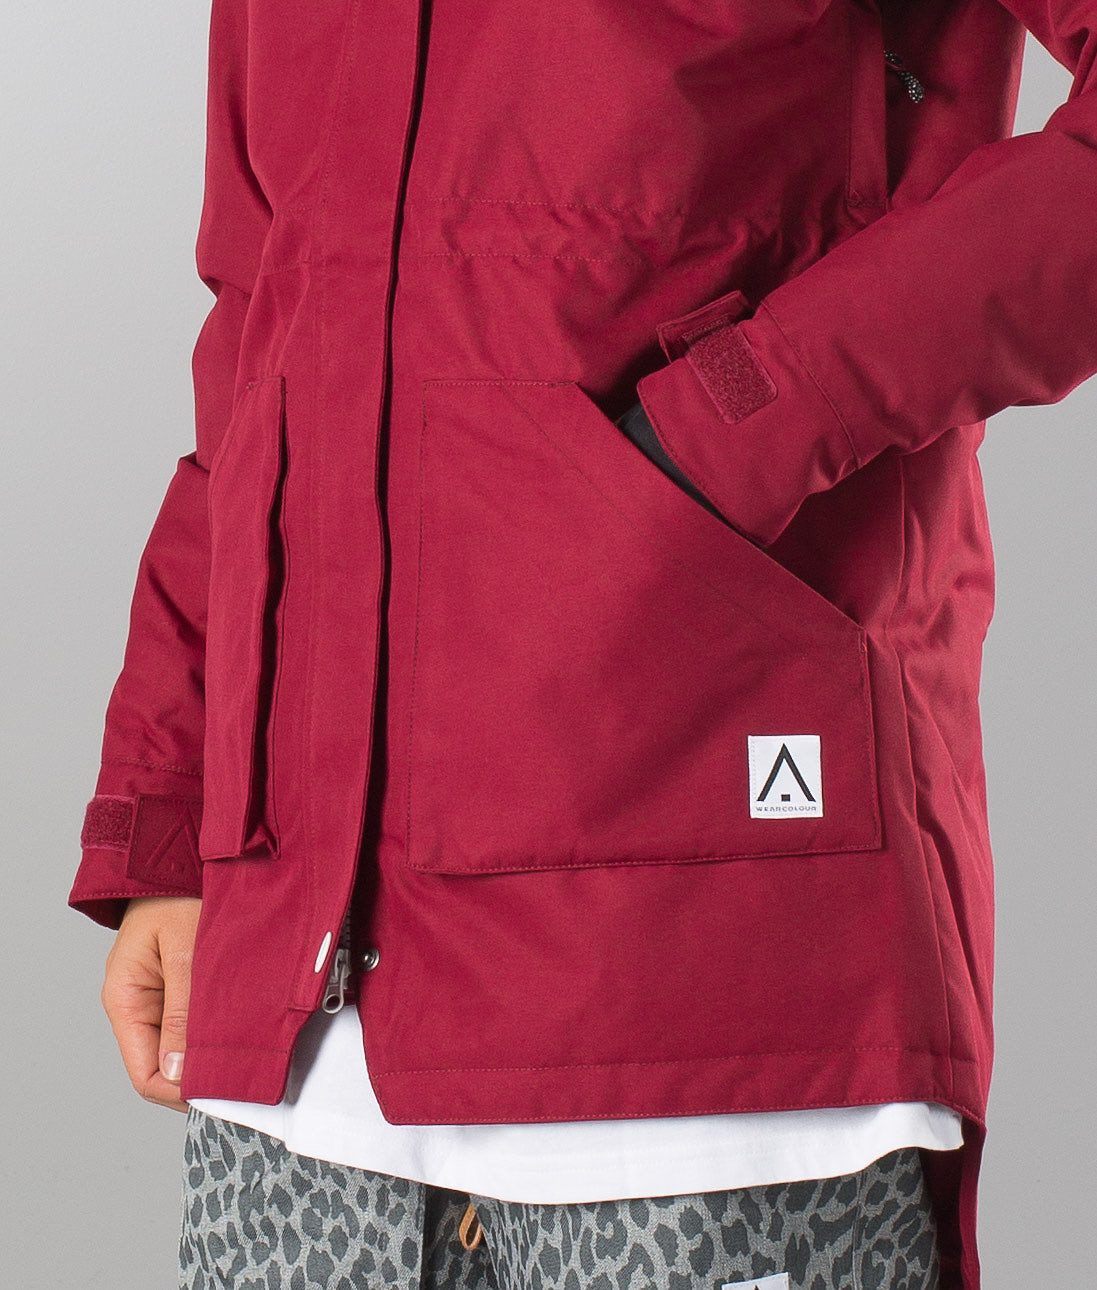 Buy WEAR Parka Snowboard Jacket from WearColour at Ridestore.com - Always free shipping, free returns and 30 days money back guarantee